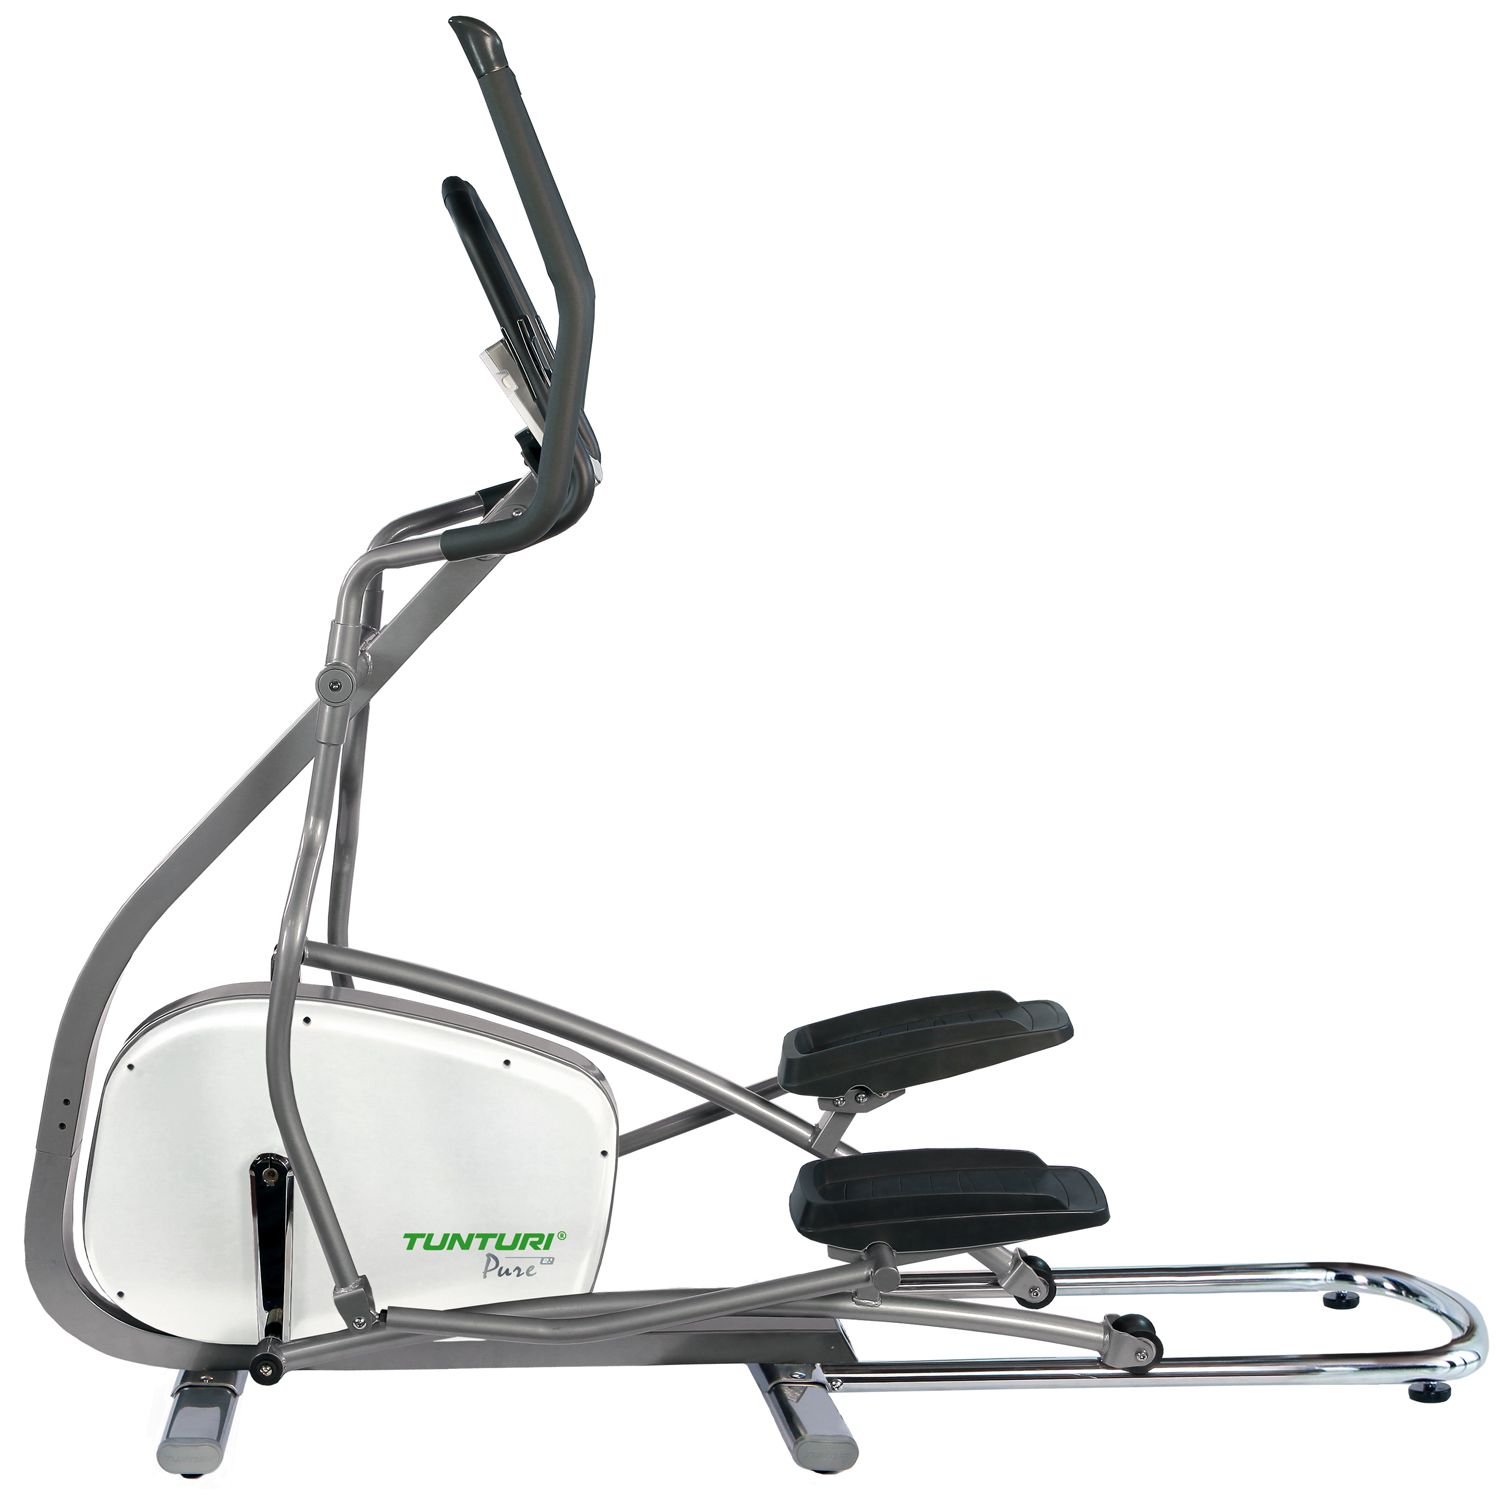 Tunturi Pure f 2.1 elliptical cross trainer